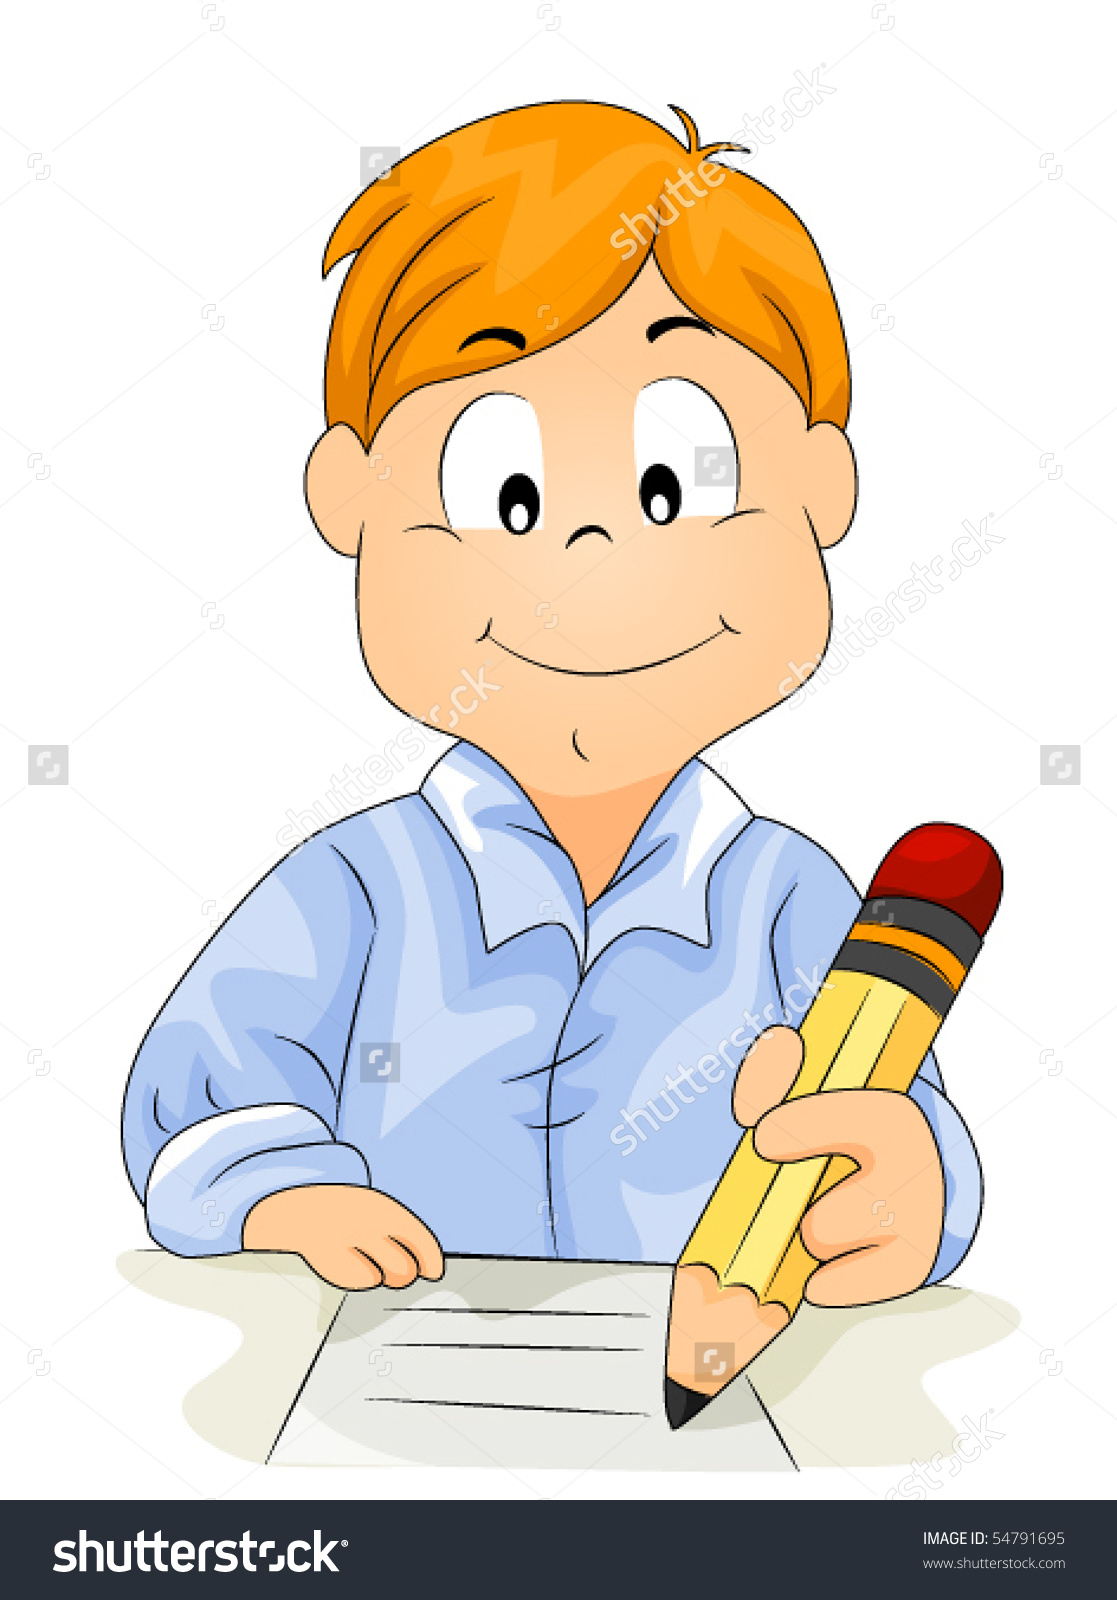 64+ Child Writing Clipart.